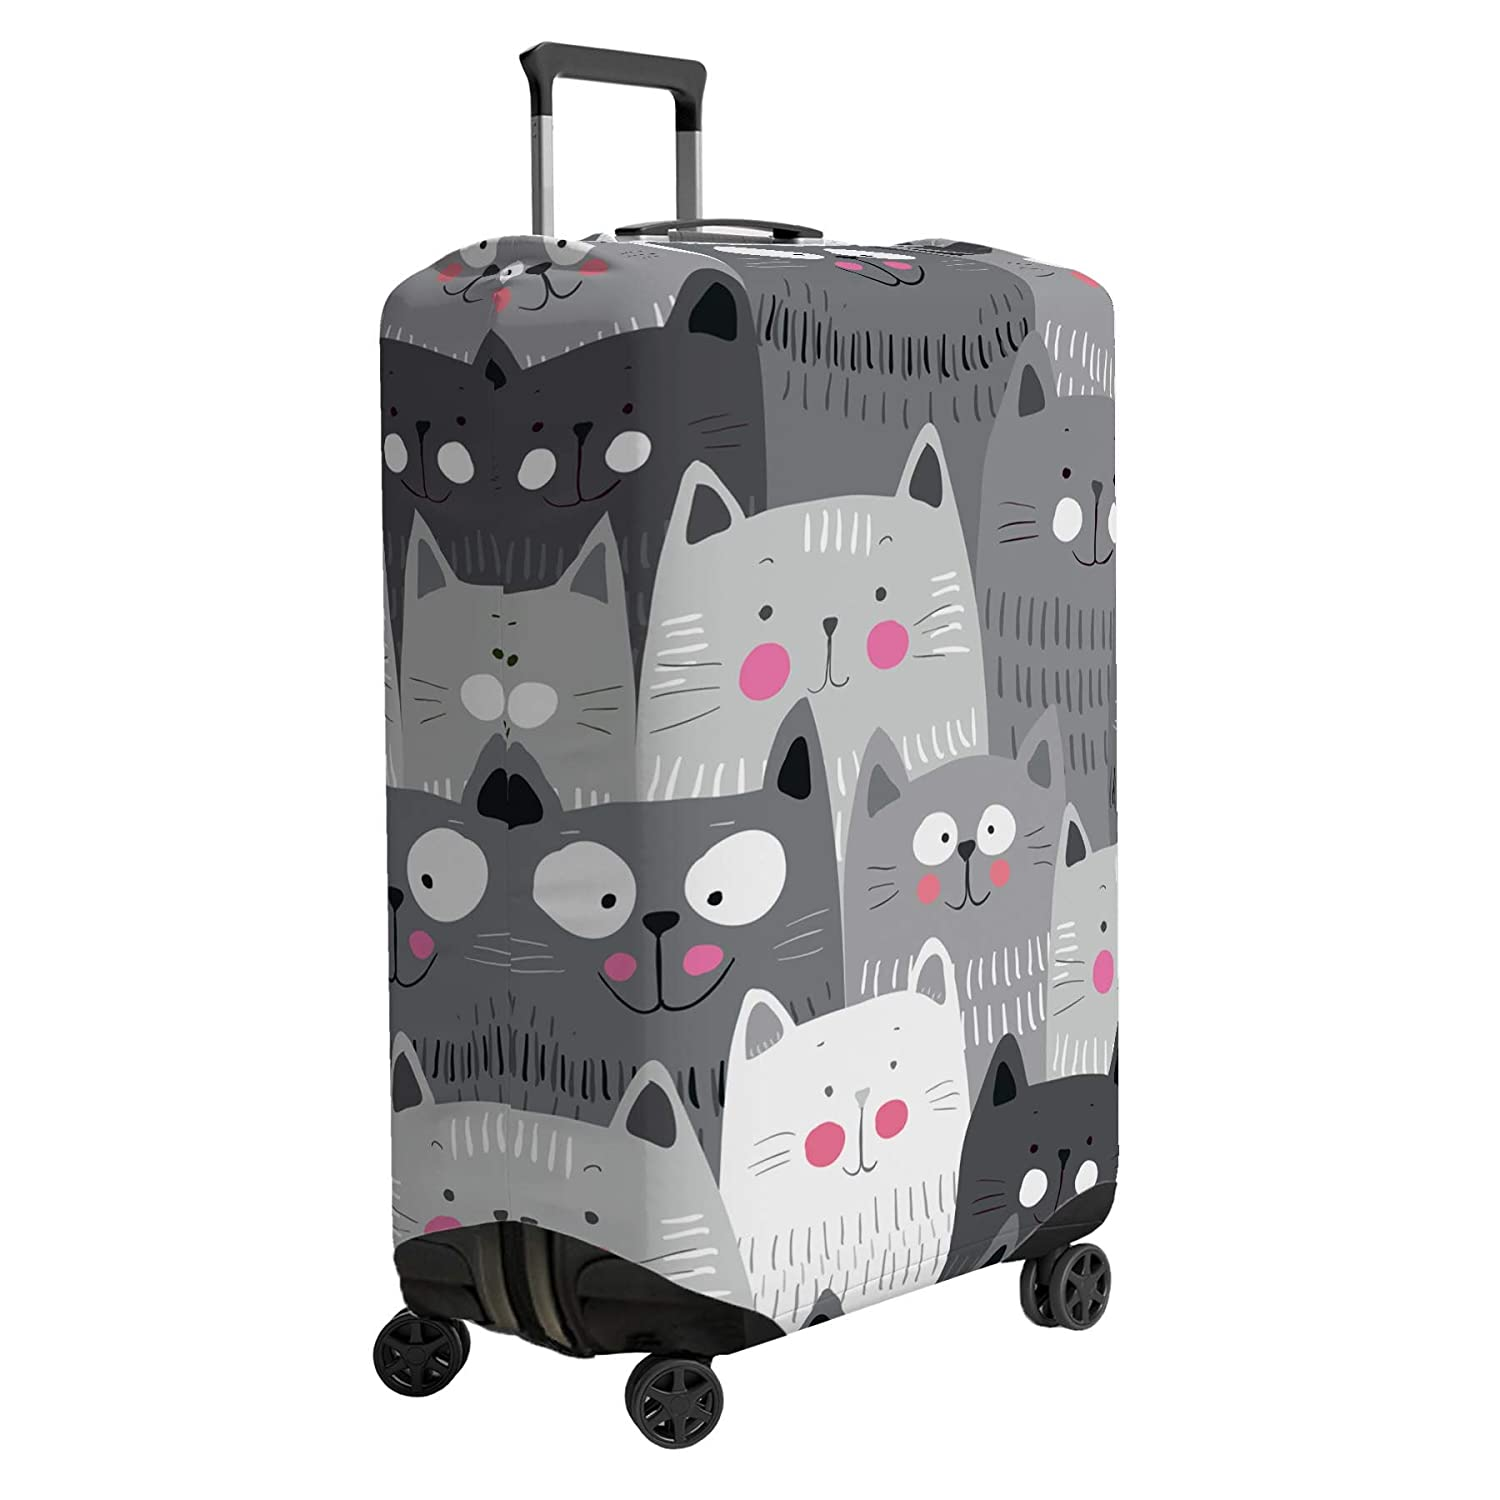 Suitcase NOT Included Cute Cat Faces Suitcase Cover Skin Protector Grey Small 18-22